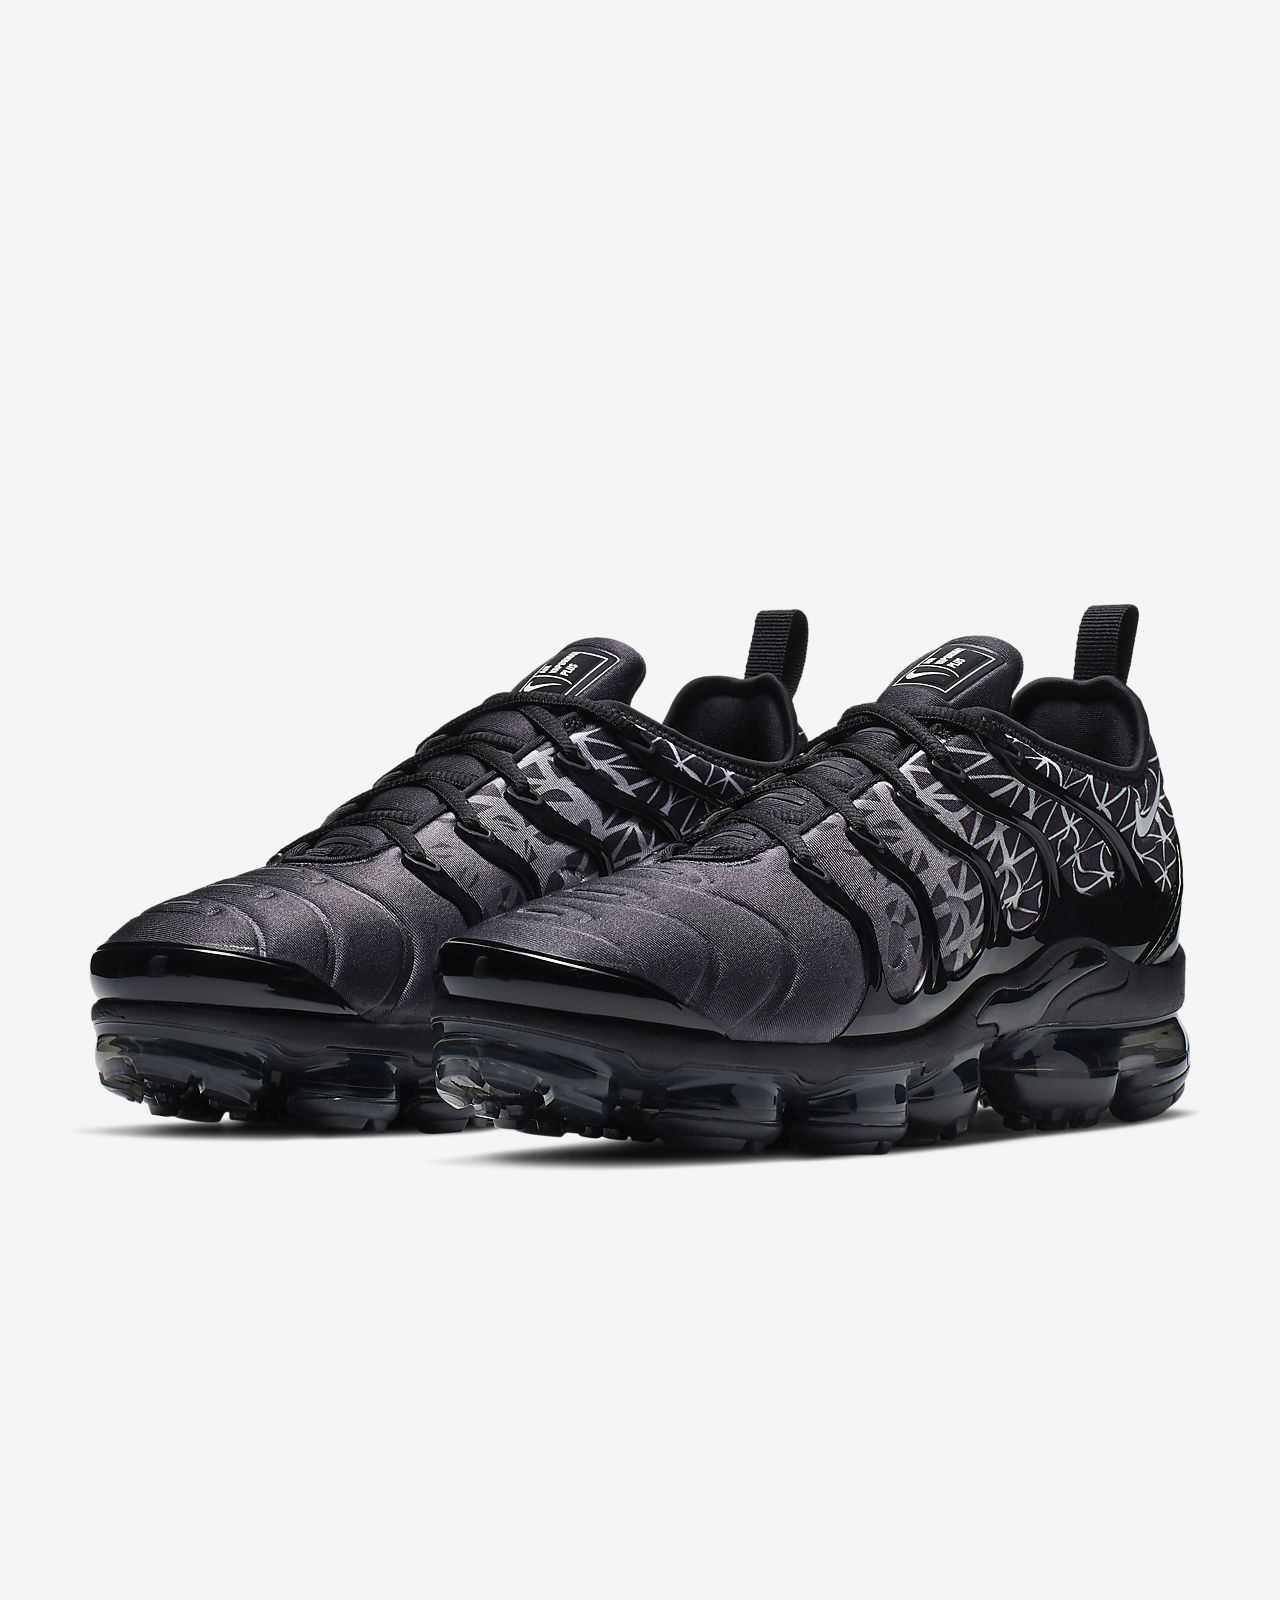 525e766a9e84 Nike Air VaporMax Plus Men s Shoe. Nike.com GB